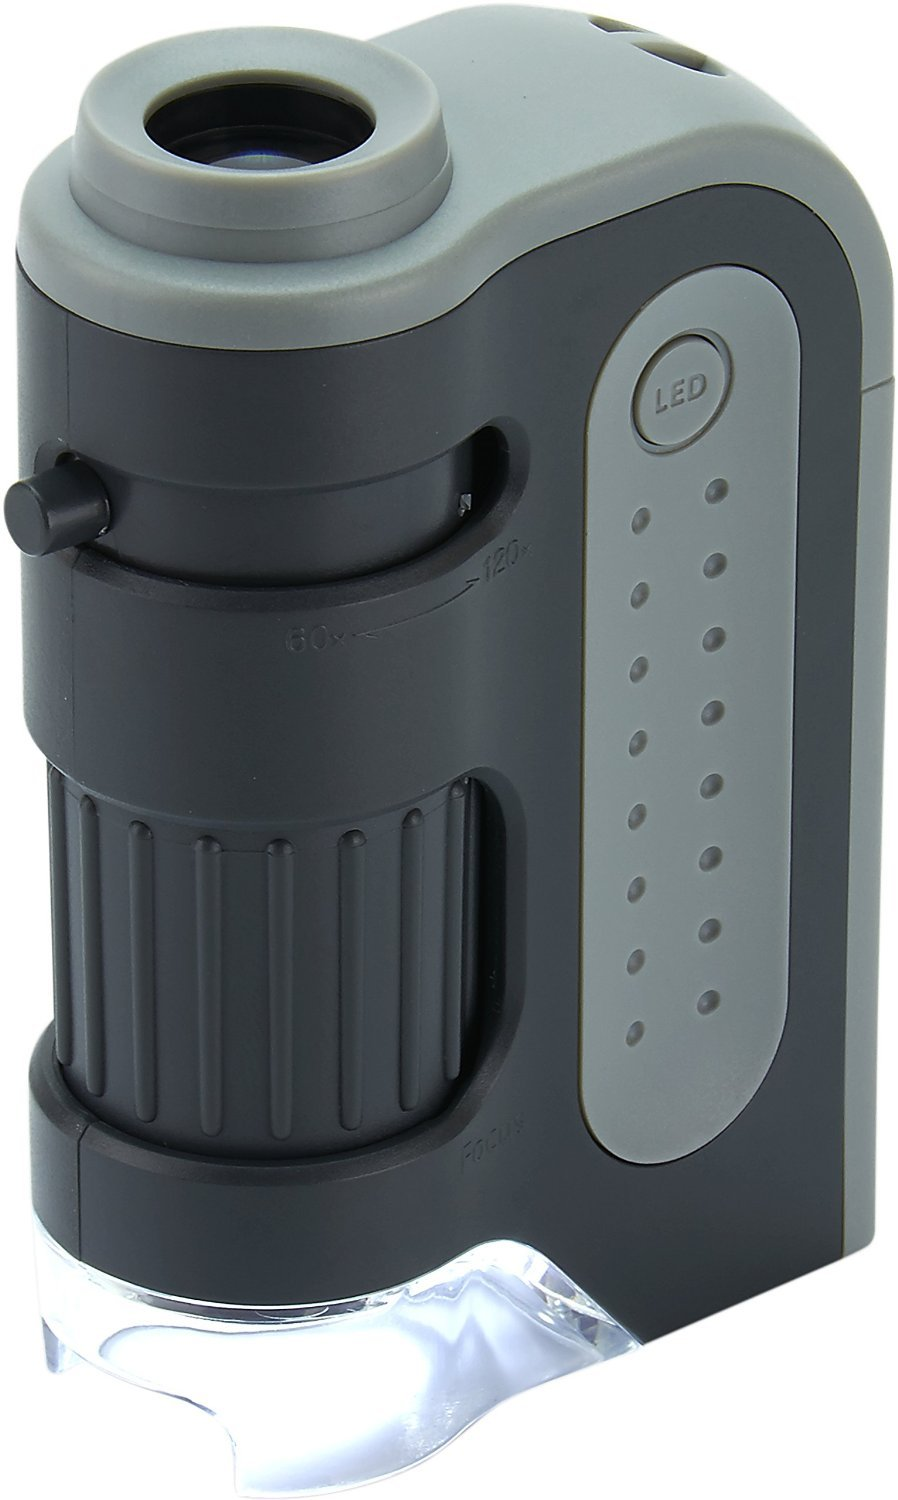 Carson MicroBrite Plus 60x-120x LED Lighted Pocket Microscope by Carson